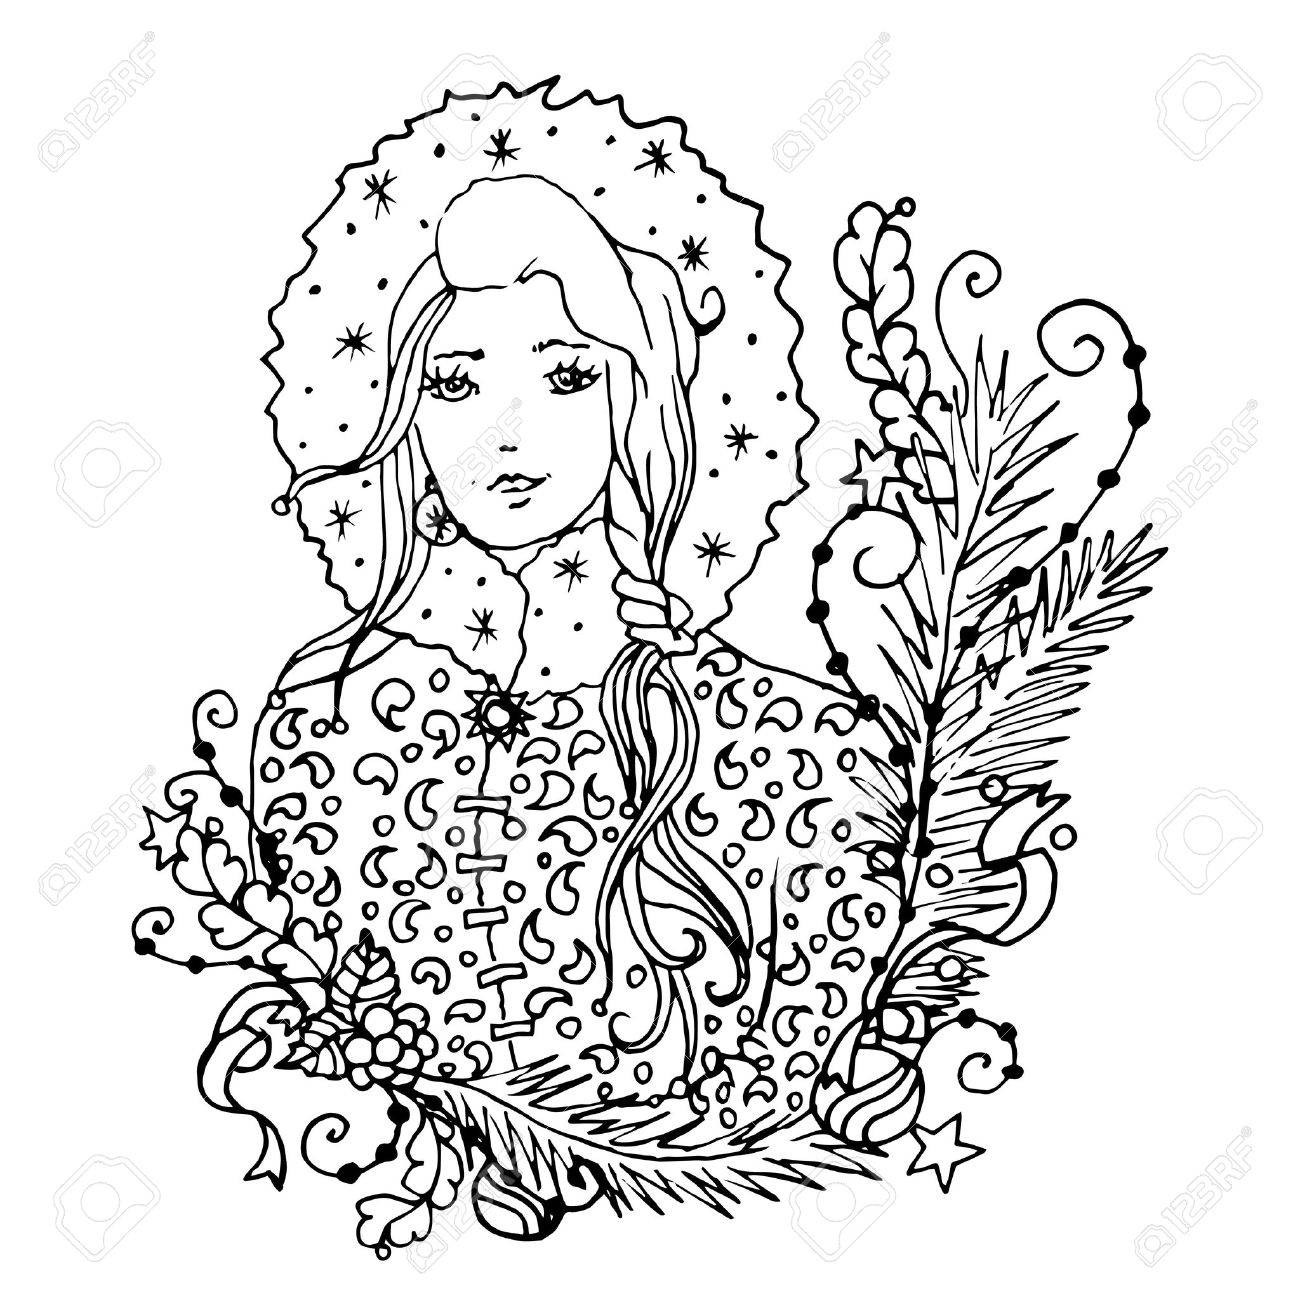 Coloring pictures merry christmas - Black Vector Mono Color Illustration With Snow Maiden Lady For Merry Christmas And Happy New Year